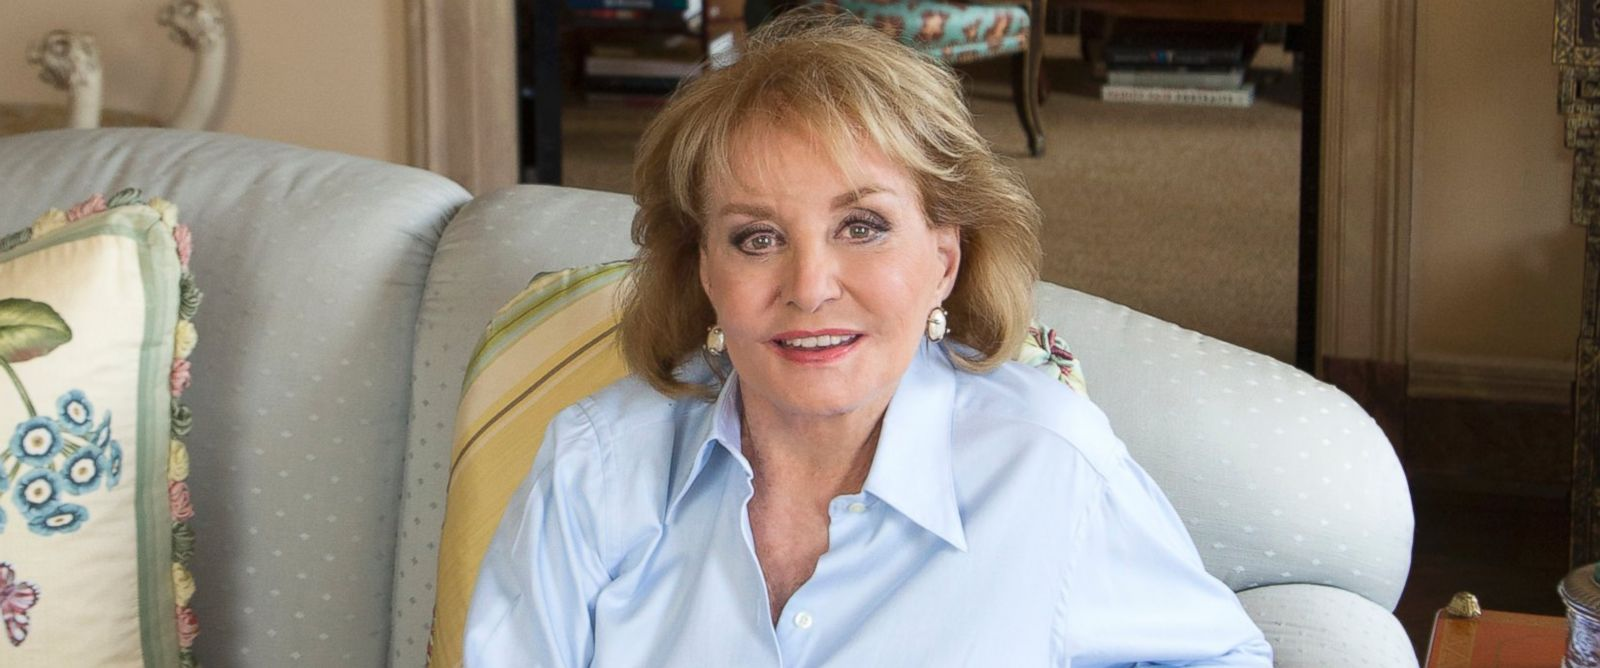 PHOTO: Barbara Walters at her New York home, April 30, 2014.